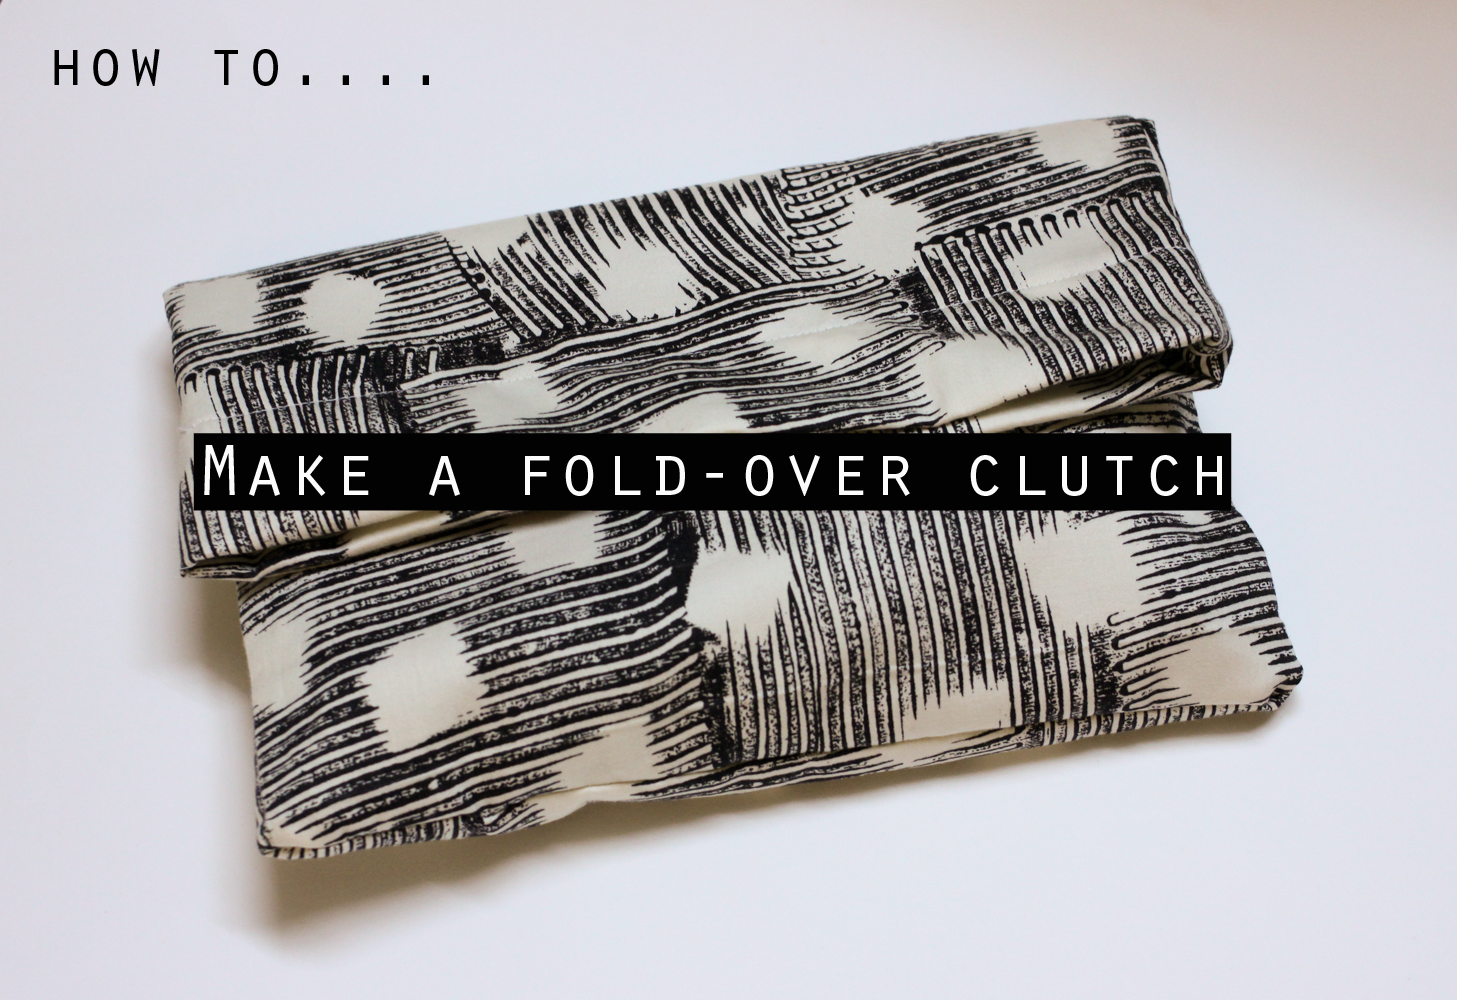 How to DIY Clutch